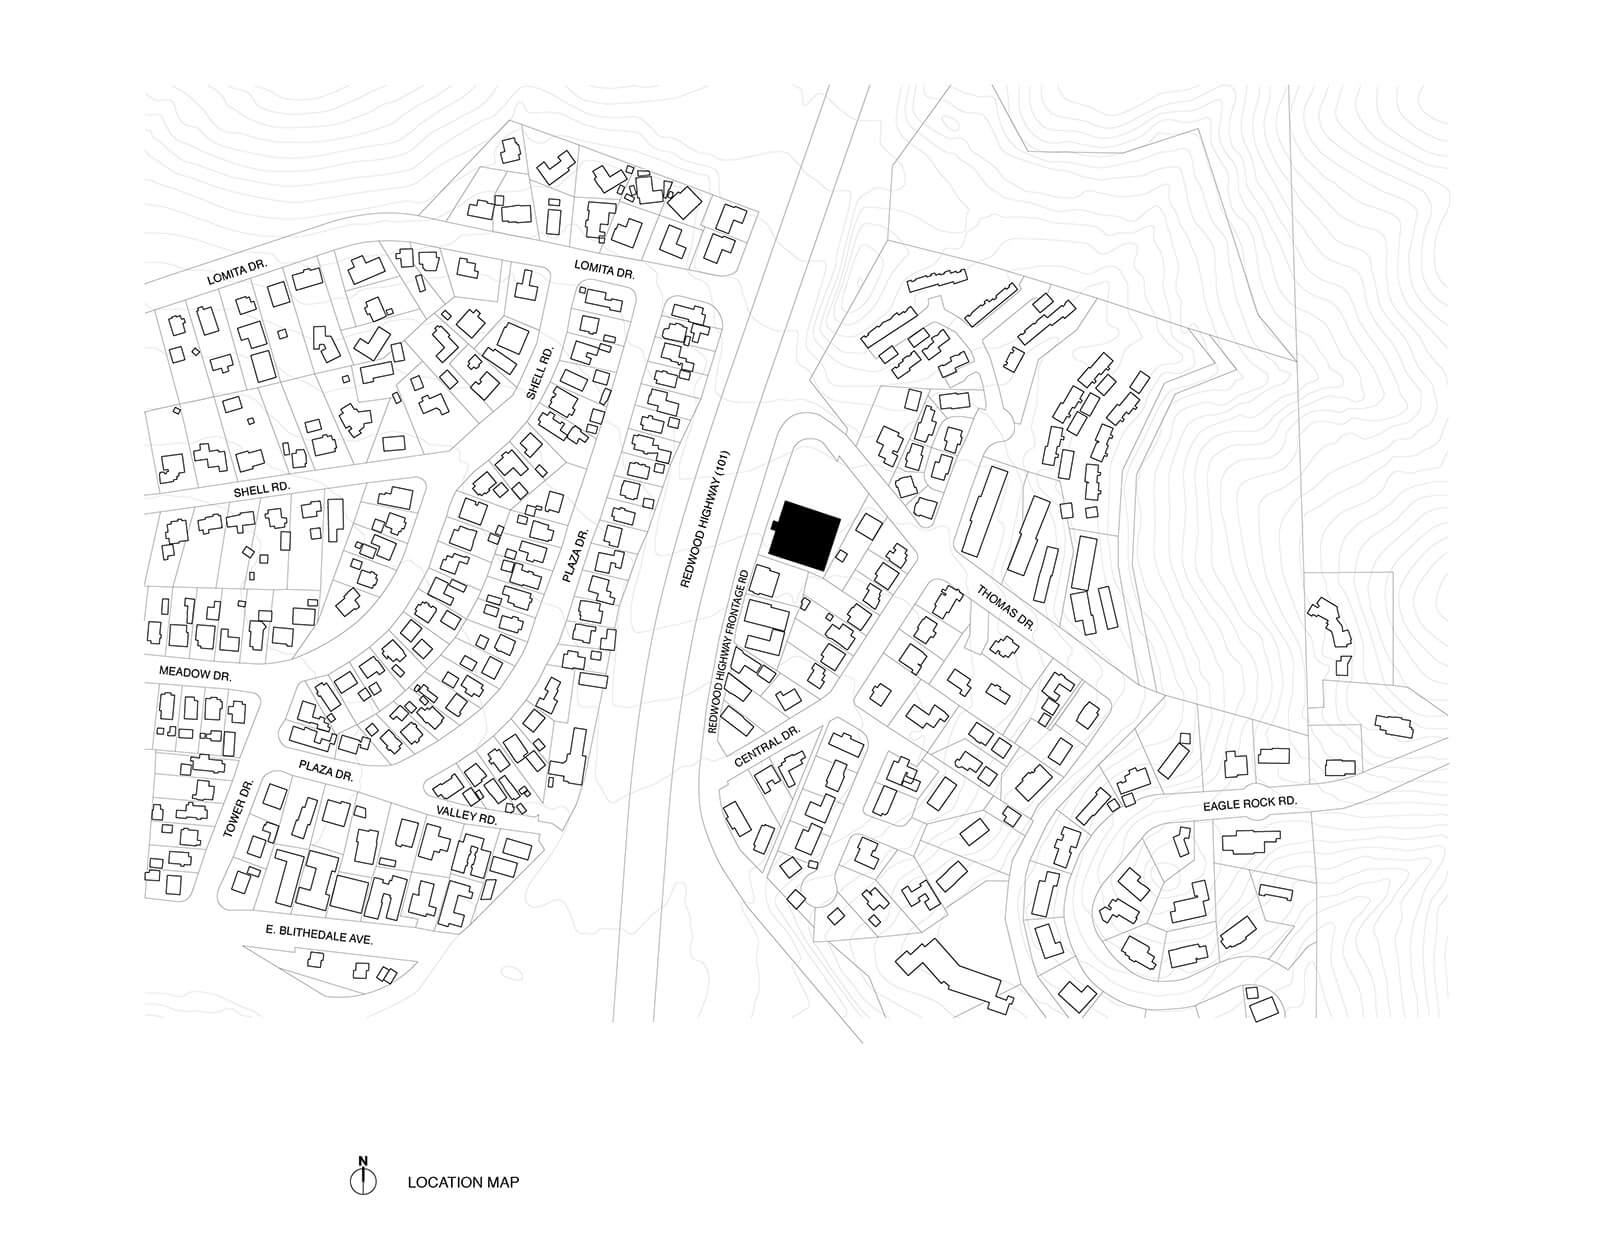 studio vara case study redwood highway drawing location map